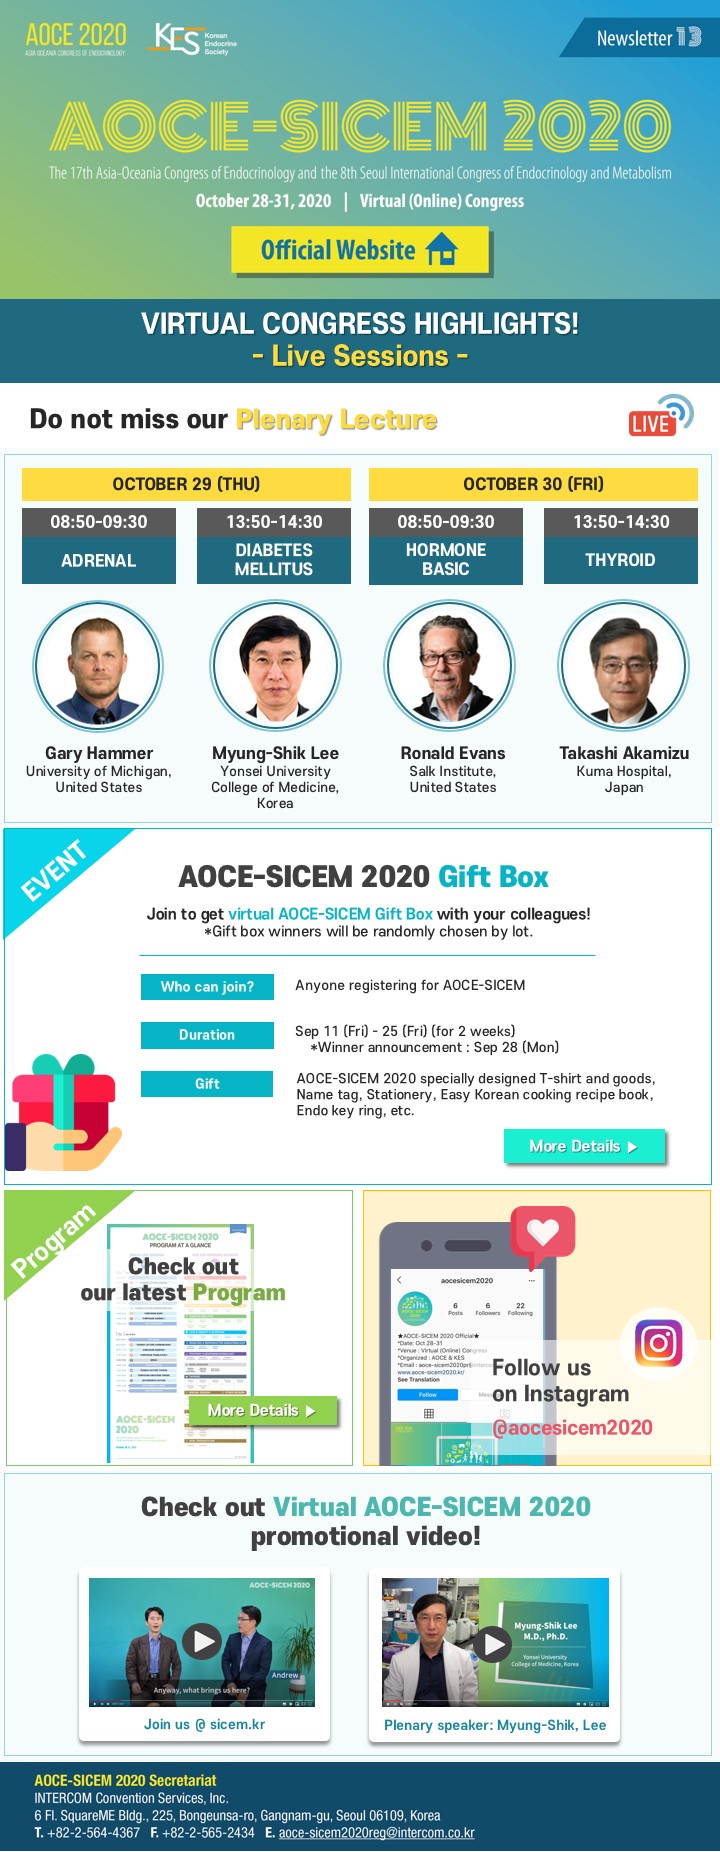 AOCE-SICEM 2020 | Endocrine and Metabolic Society of Singapore (EMSS)